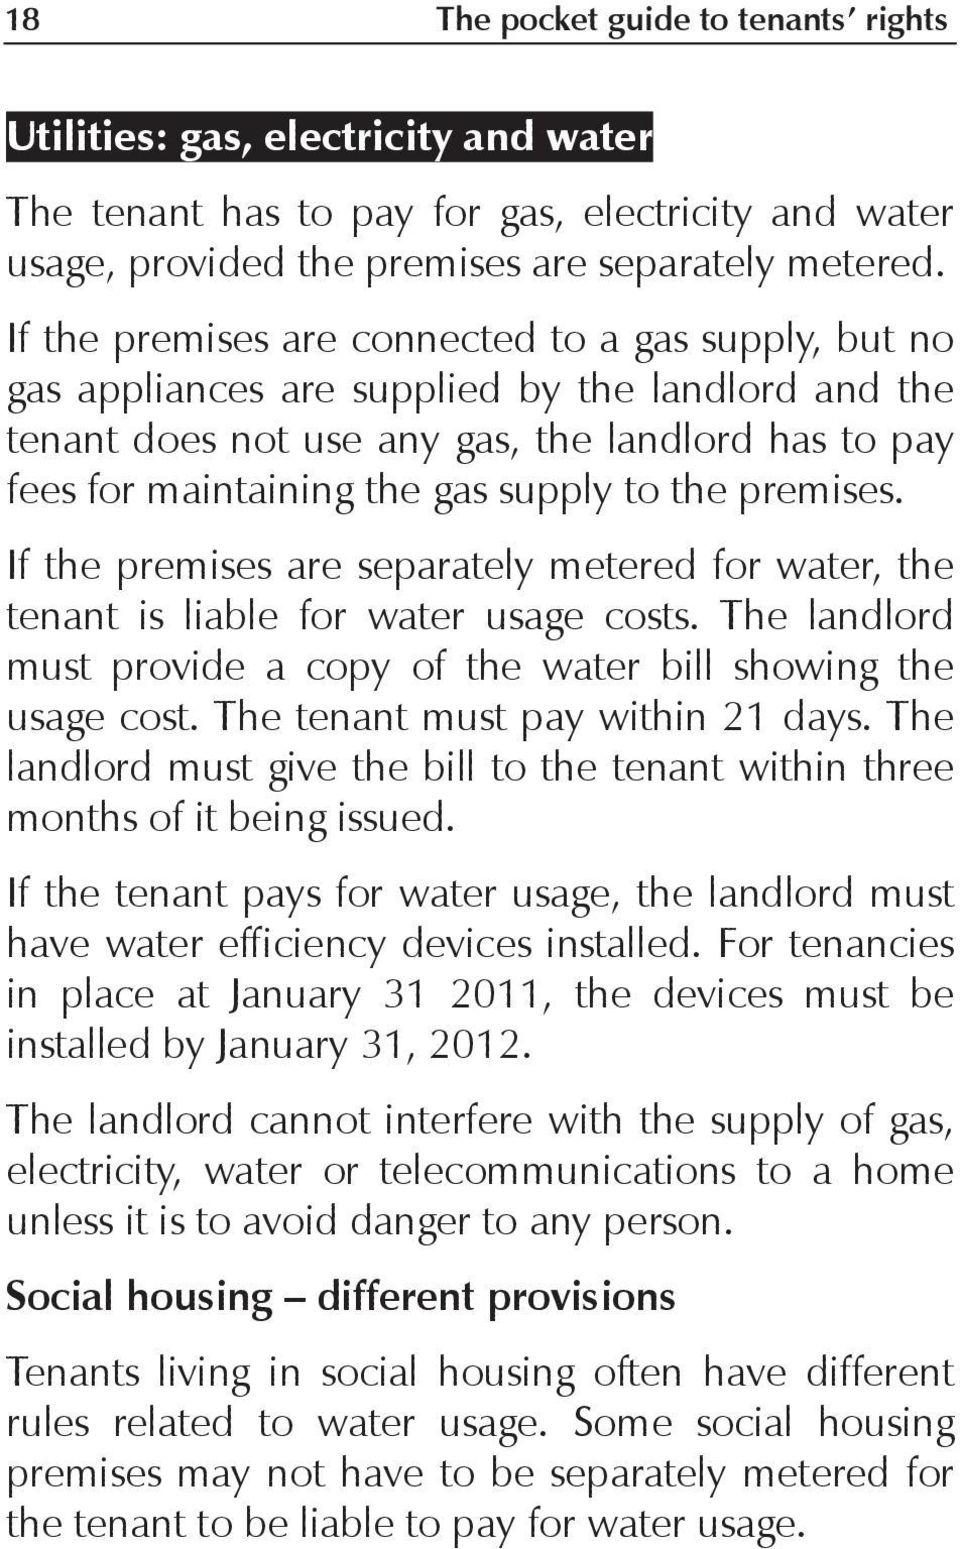 the premises. If the premises are separately metered for water, the tenant is liable for water usage costs. The landlord must provide a copy of the water bill showing the usage cost.